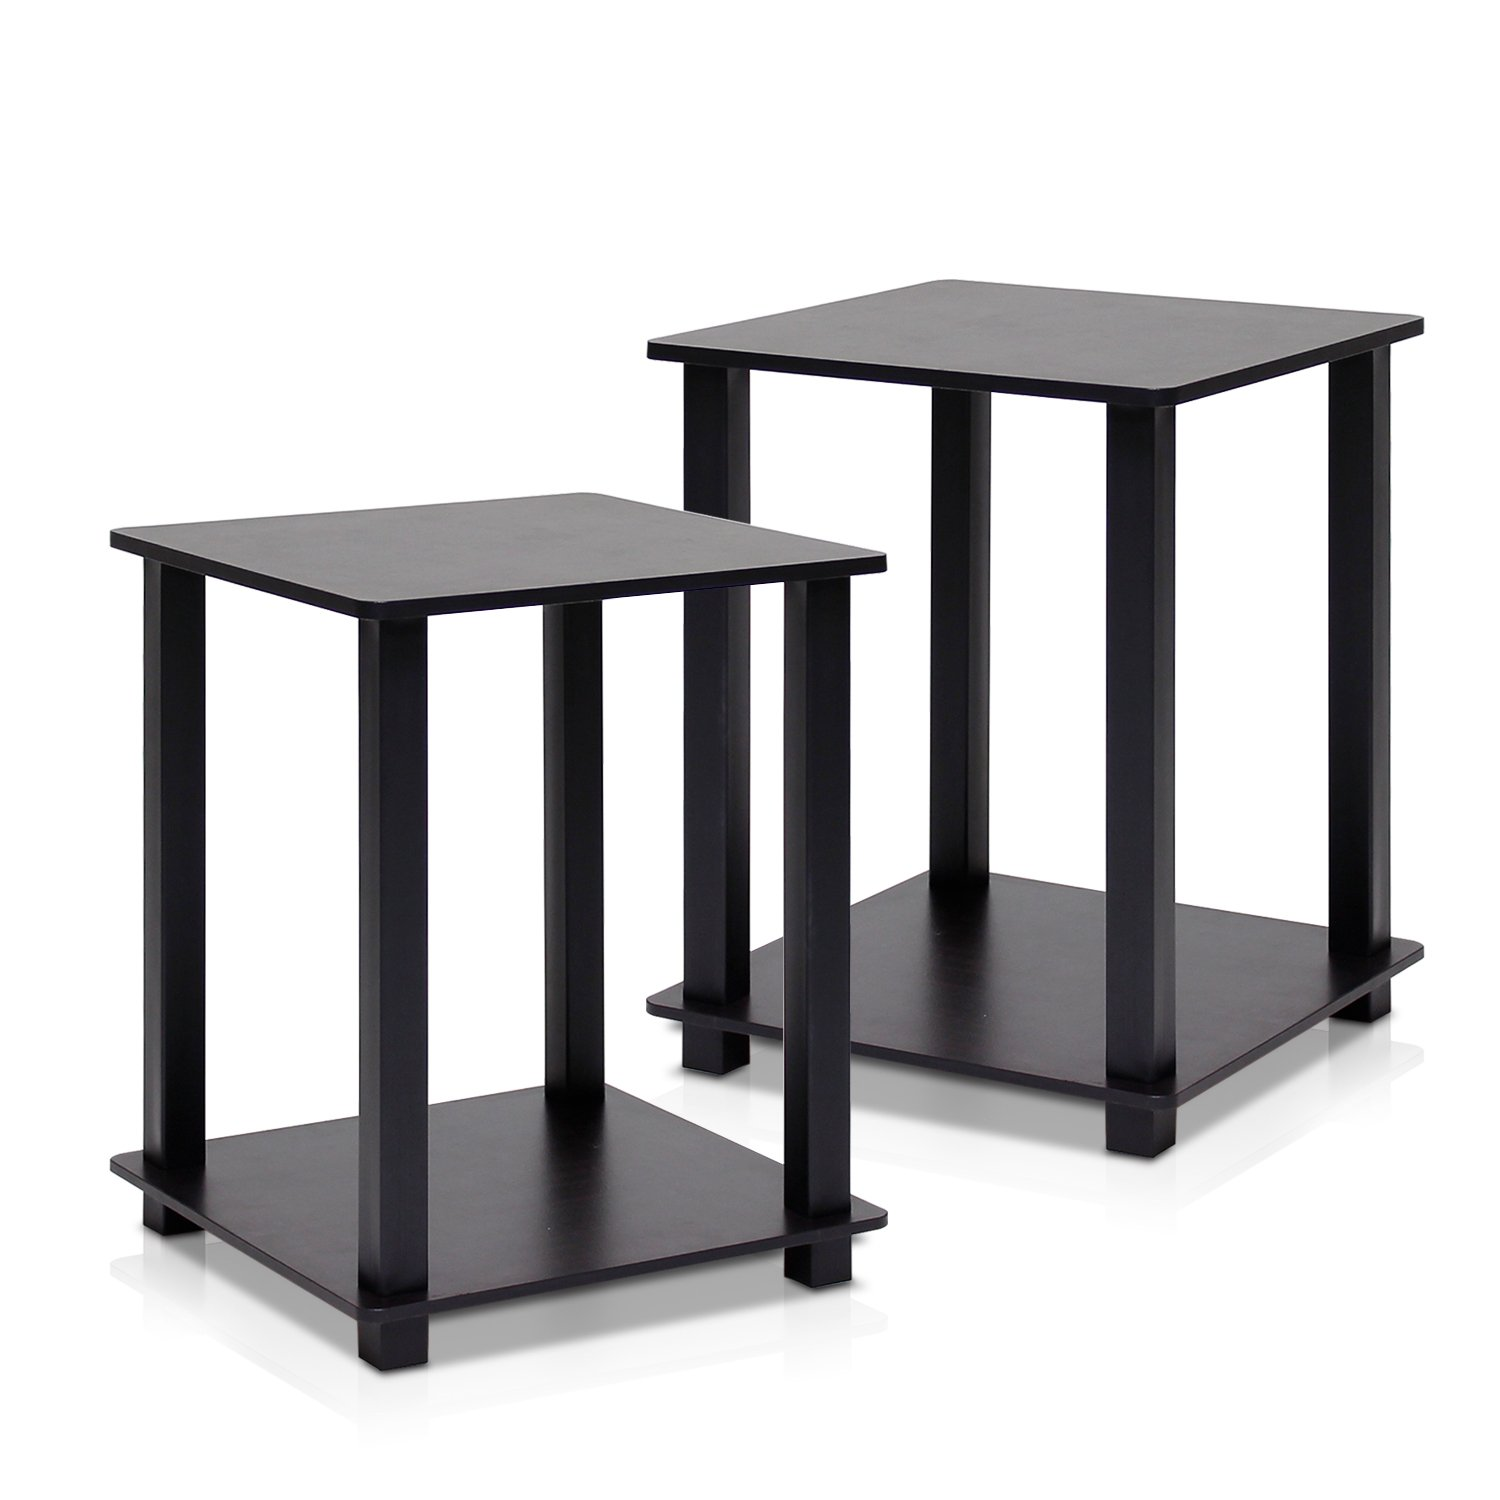 Furinno 12127EX/BK Simplistic End Table, Espresso/Black, Set of 2 by Furinno